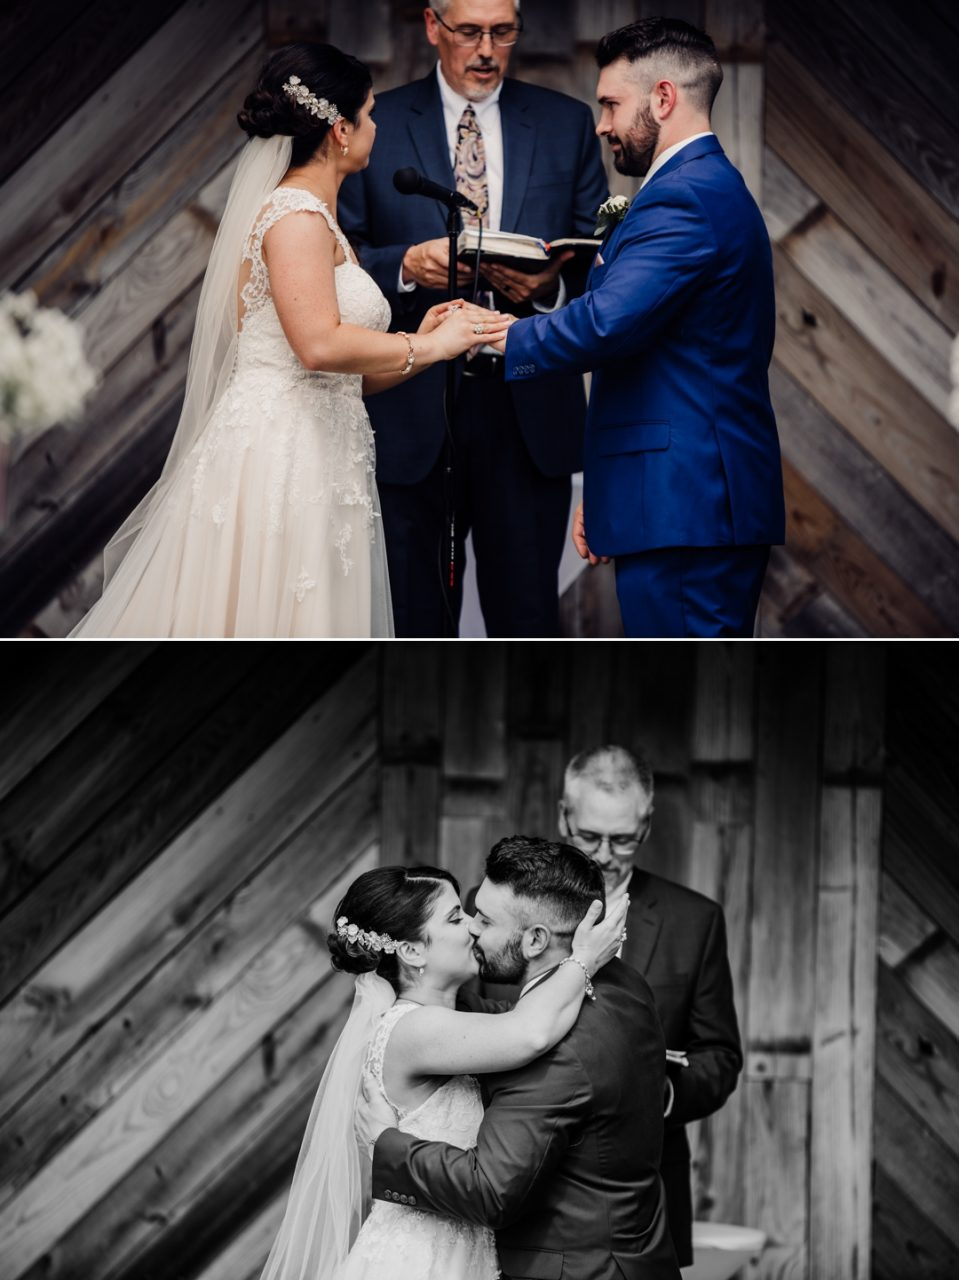 David + Maria | Wedding at The Place At 534 | Bride and Groom Exchange of Rings and First Kiss